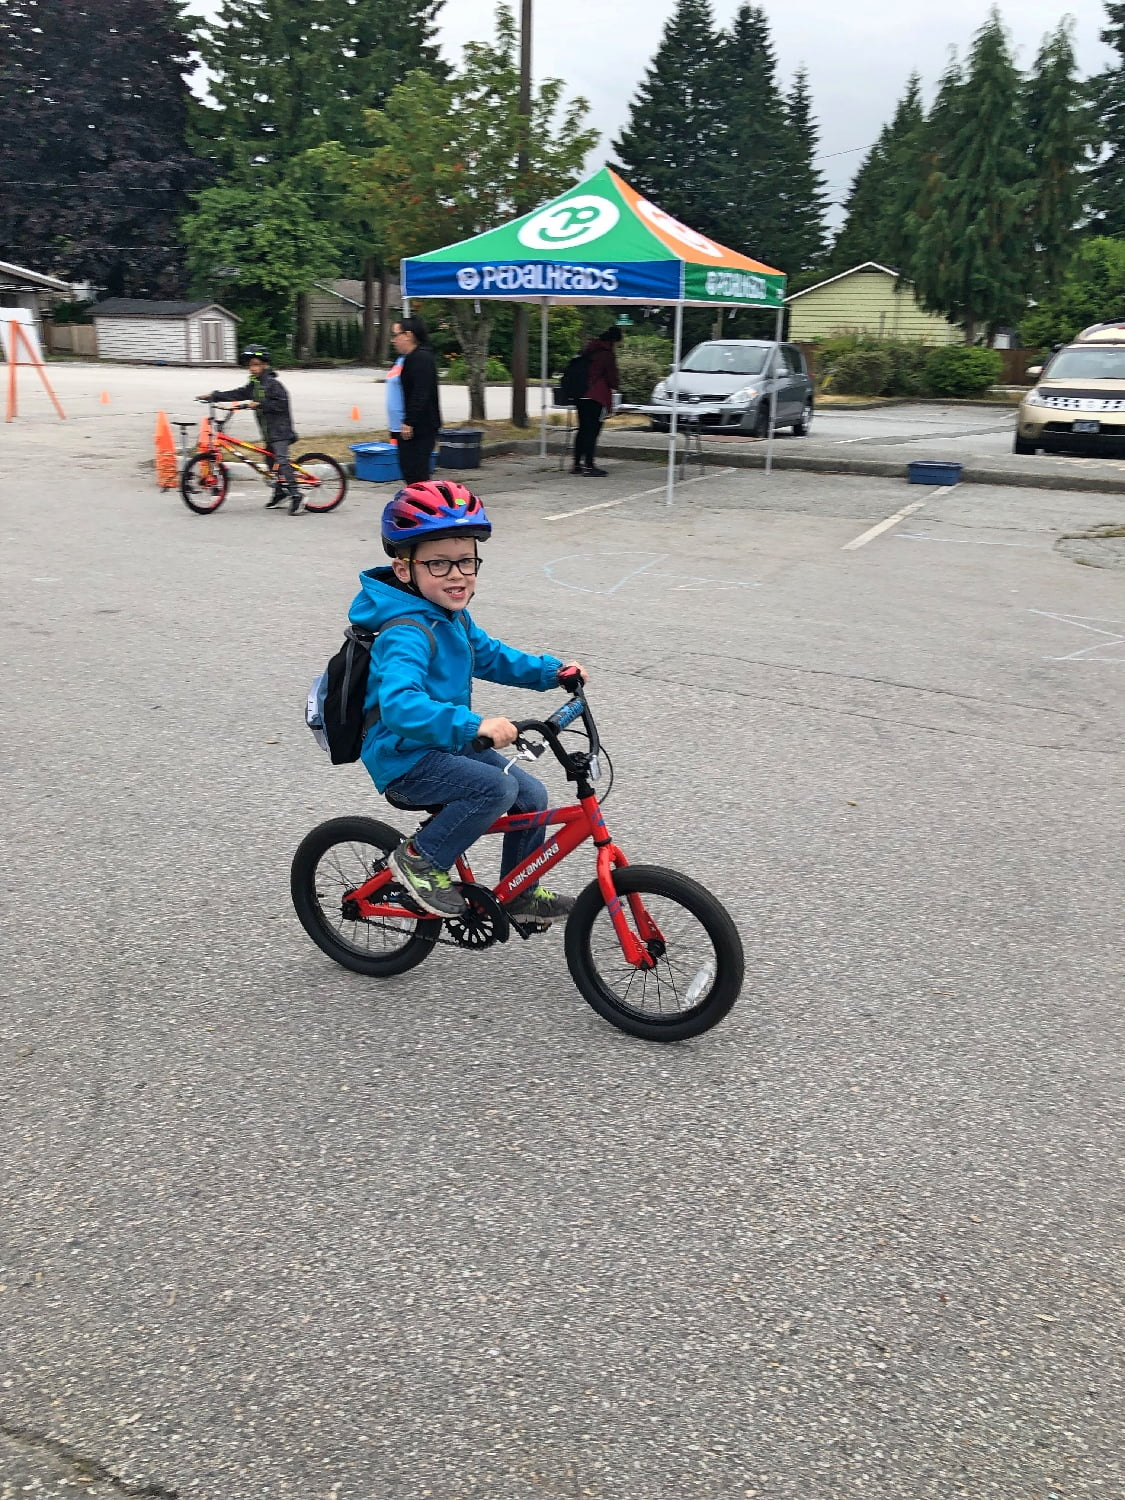 Boy Learning to Ride A Bike with No Training Wheels at Pedalheads Camp